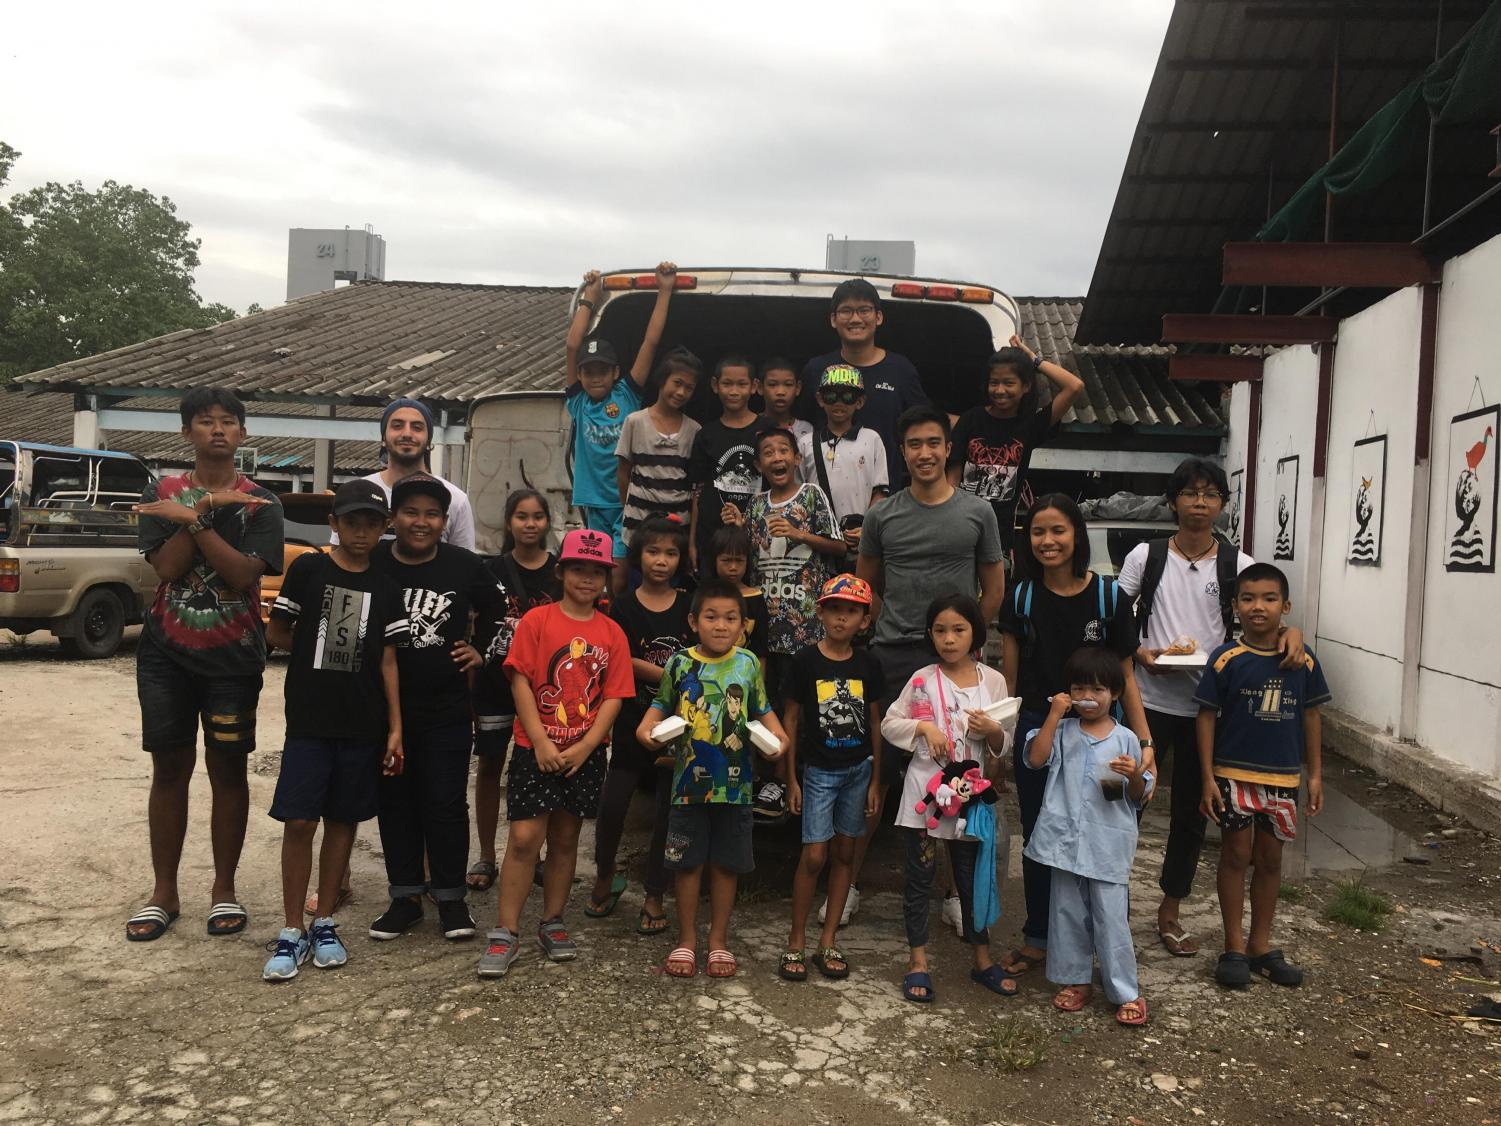 AIESEC volunteers with the kids of Khlong Toey in Thailand